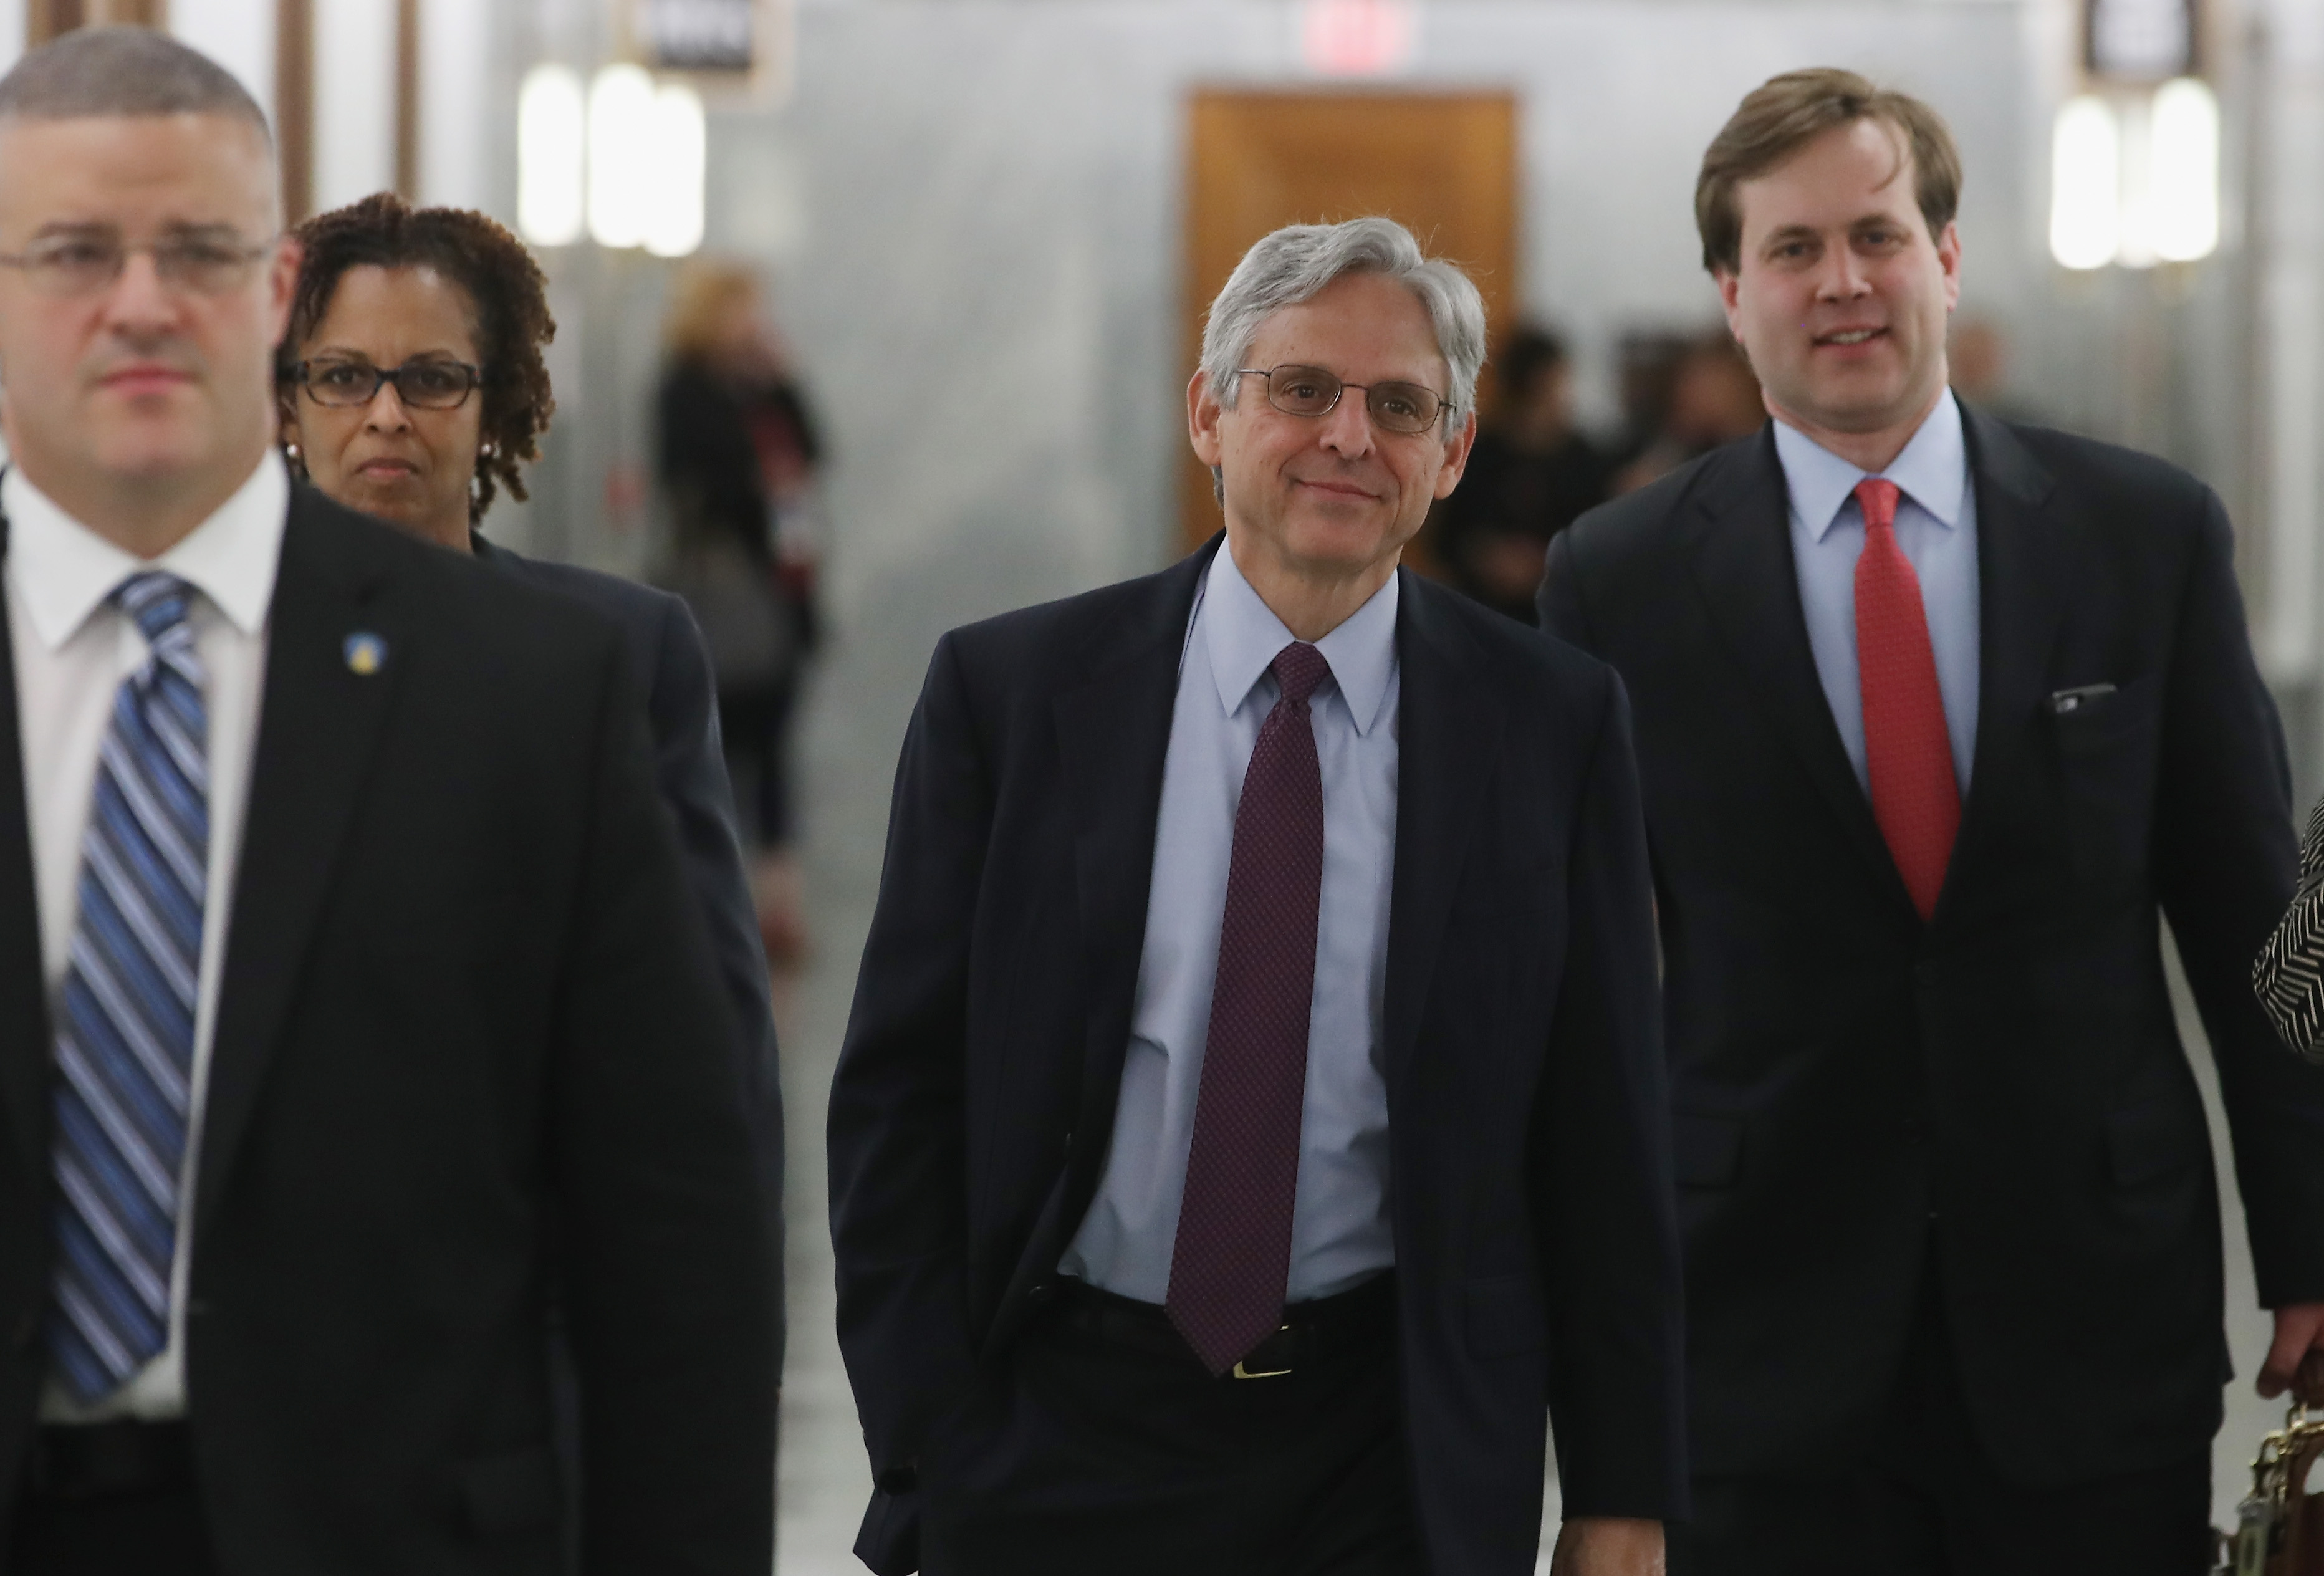 Supreme Court nominee Merrick Garland (C) arrives at a meeting on Capitol Hill on May 11, 2016. (Mark Wilson/Getty Images)